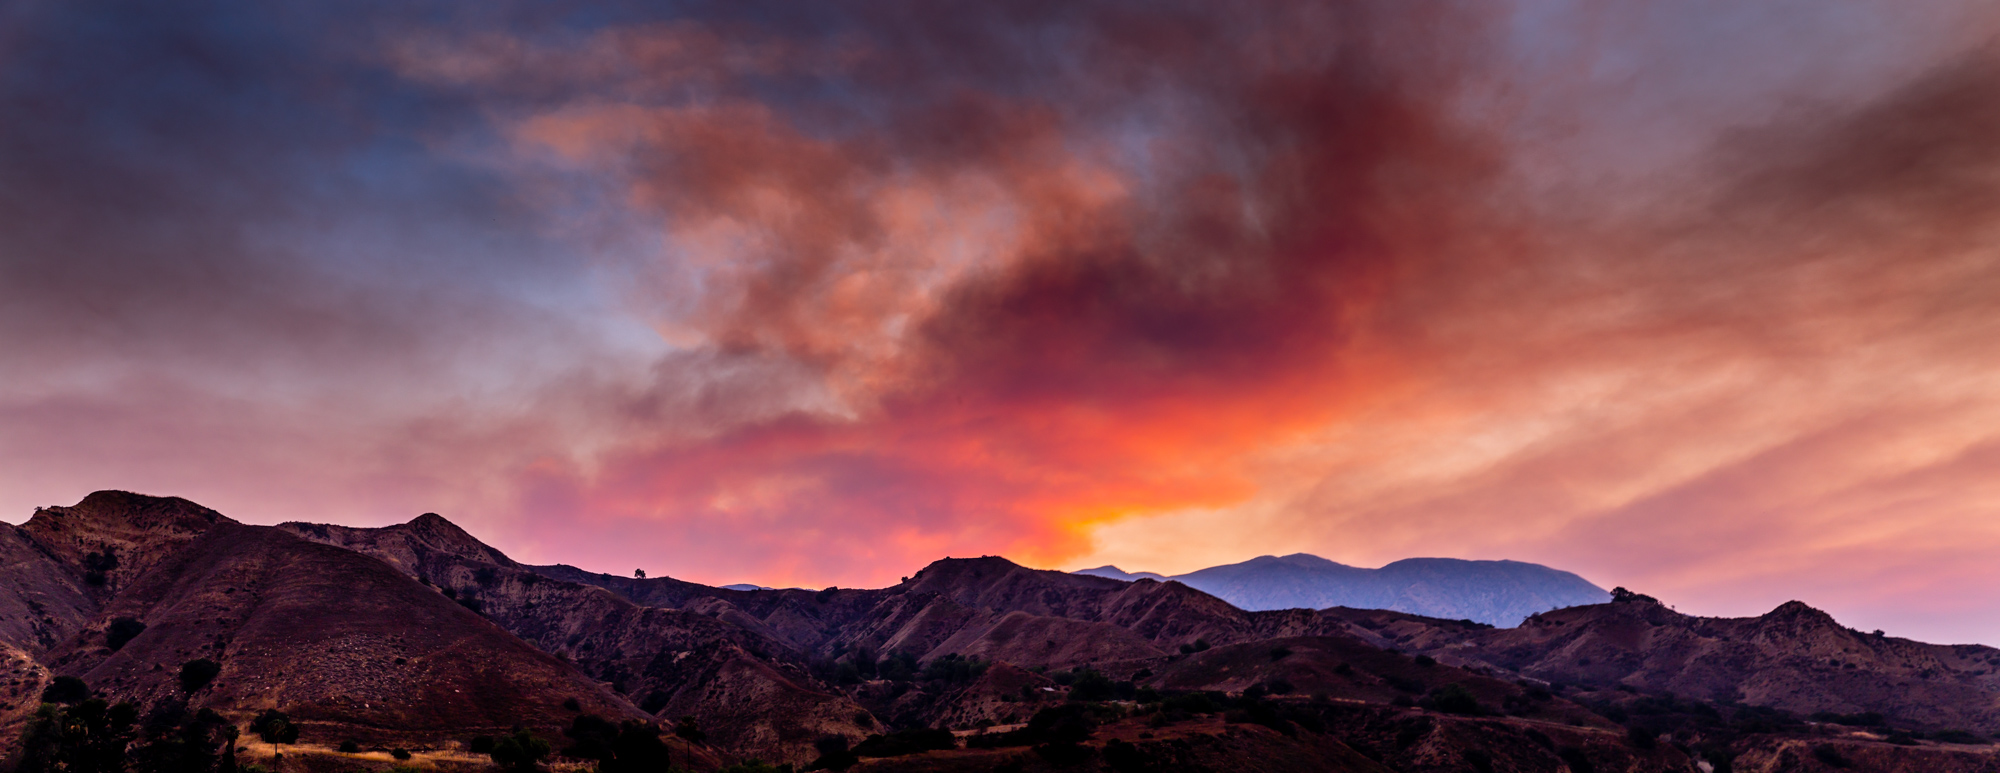 Sand Canyon Wildfire Pano-1